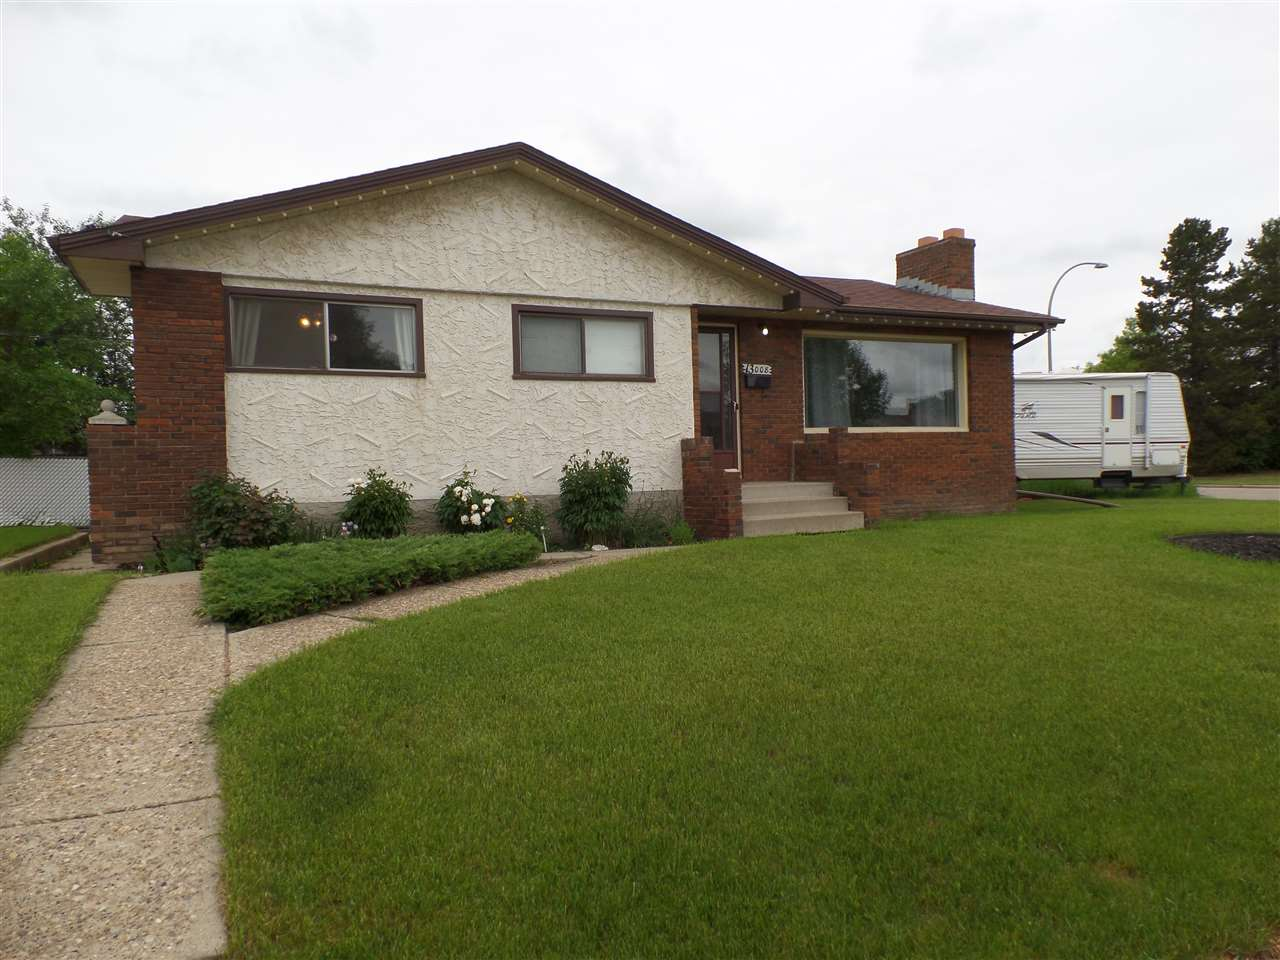 Main Photo: 13008 73 Street in Edmonton: Zone 02 House for sale : MLS(r) # E4068595